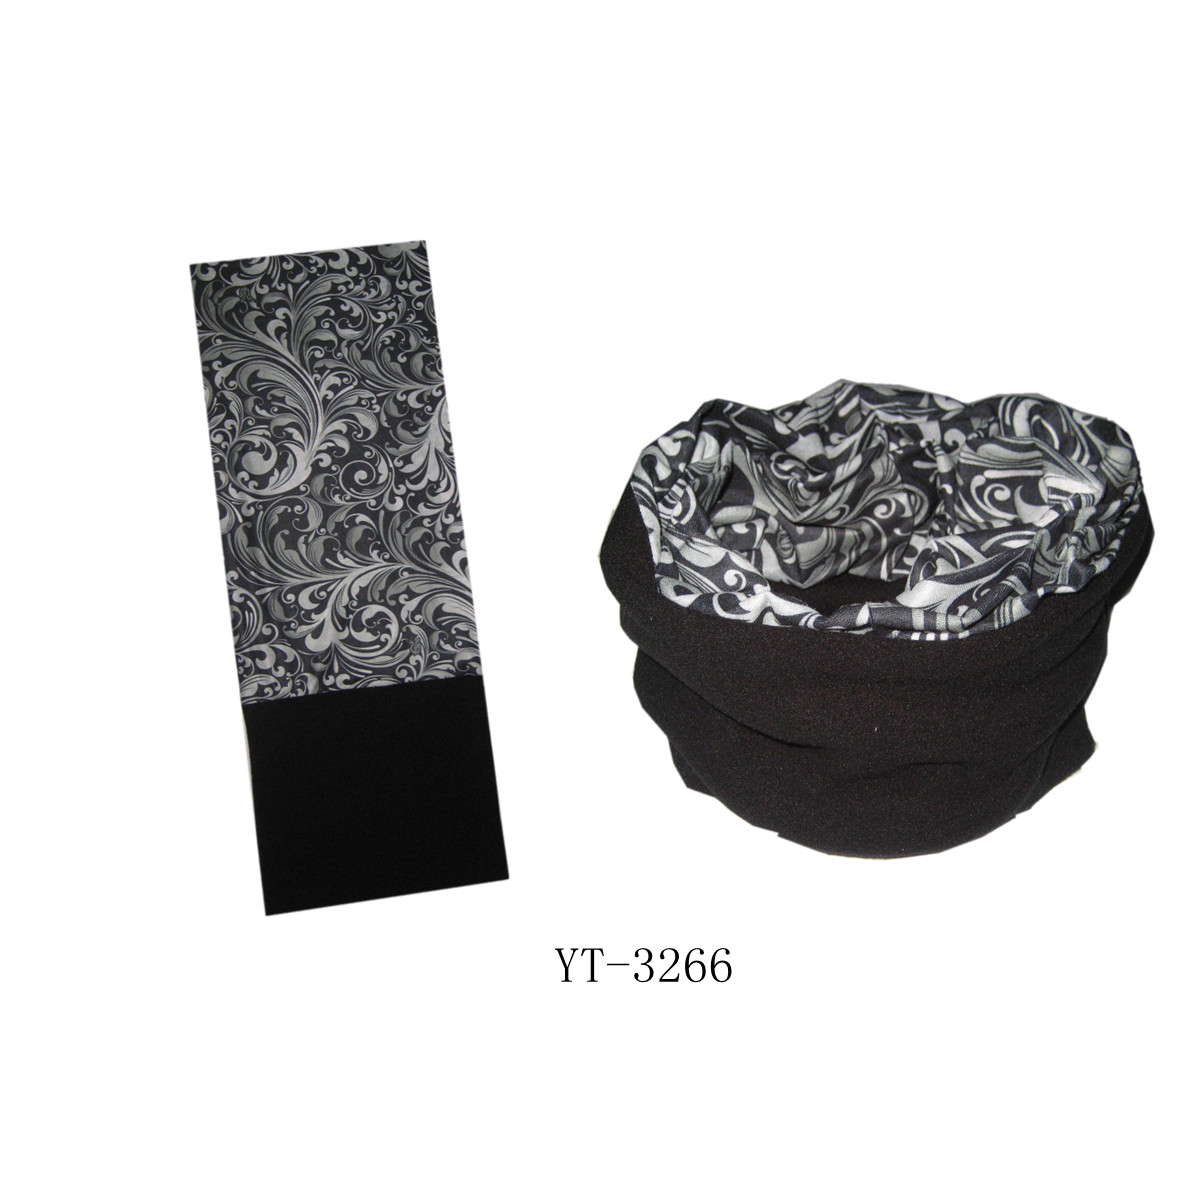 Fashion Multifunctional Bandana+Fleece with Strong Stretch (YT-3226)